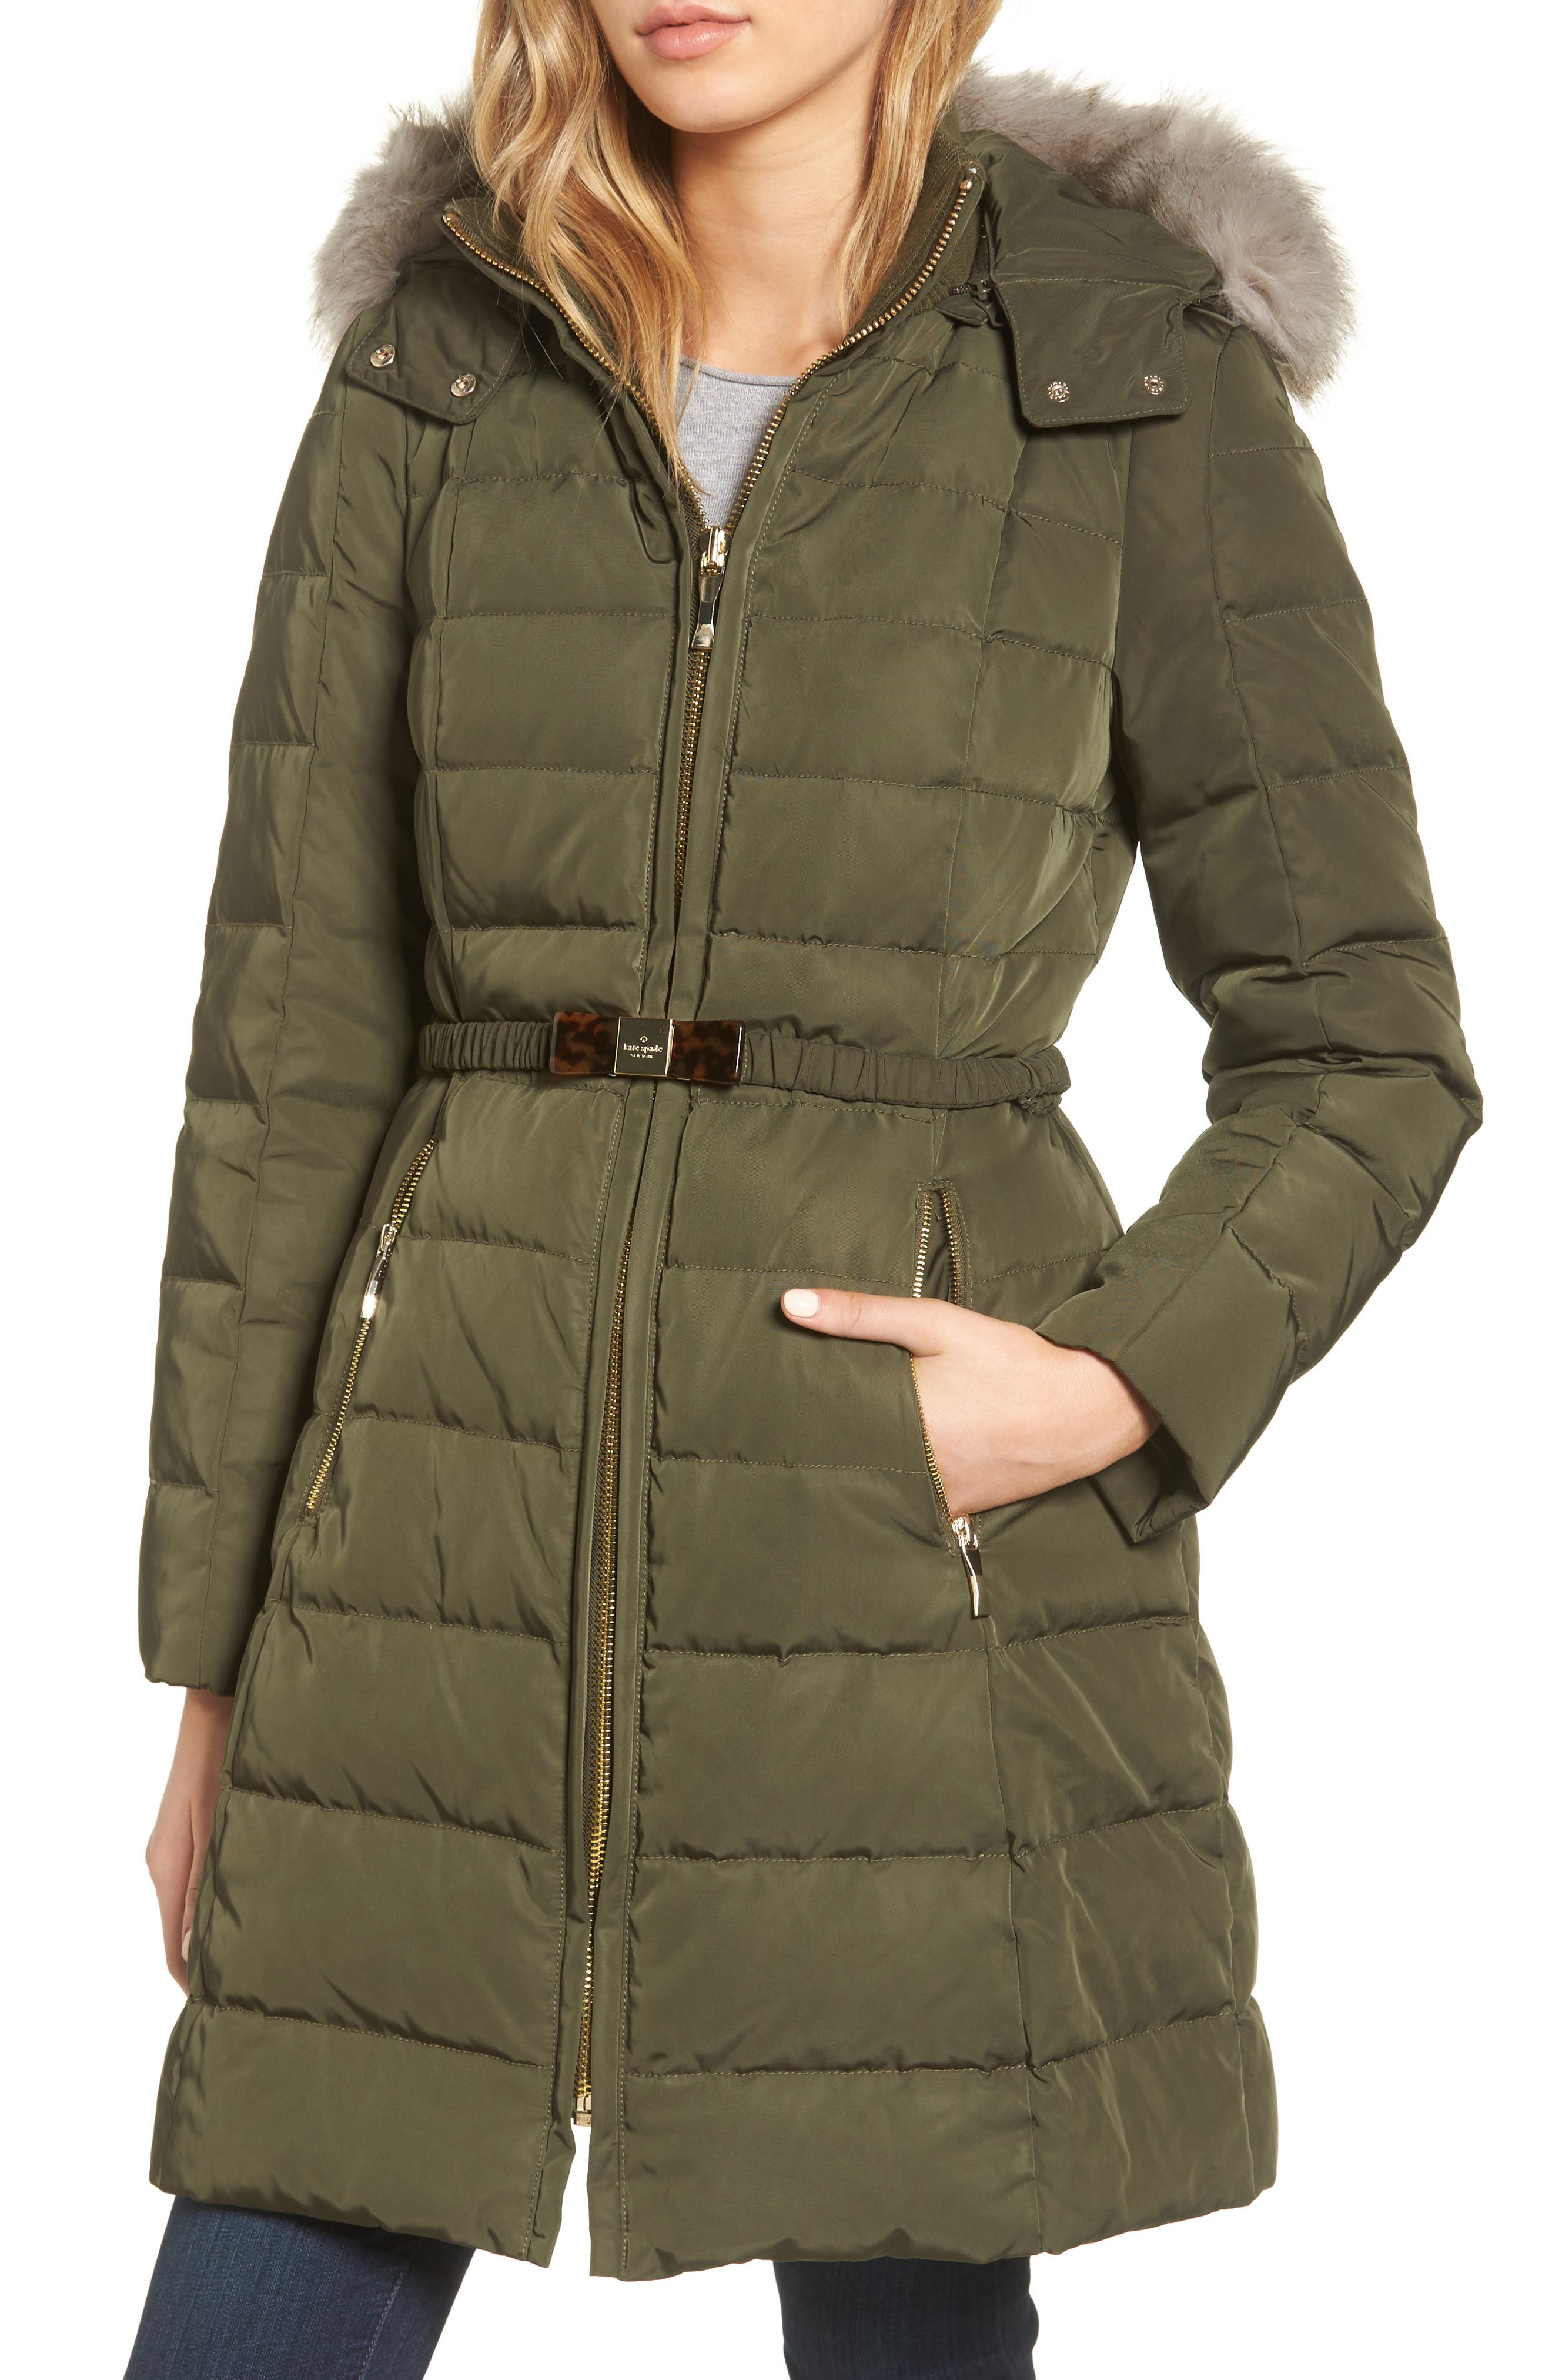 kate spade new york water-resistant quilted down coat with detachable faux fur trimmed hood